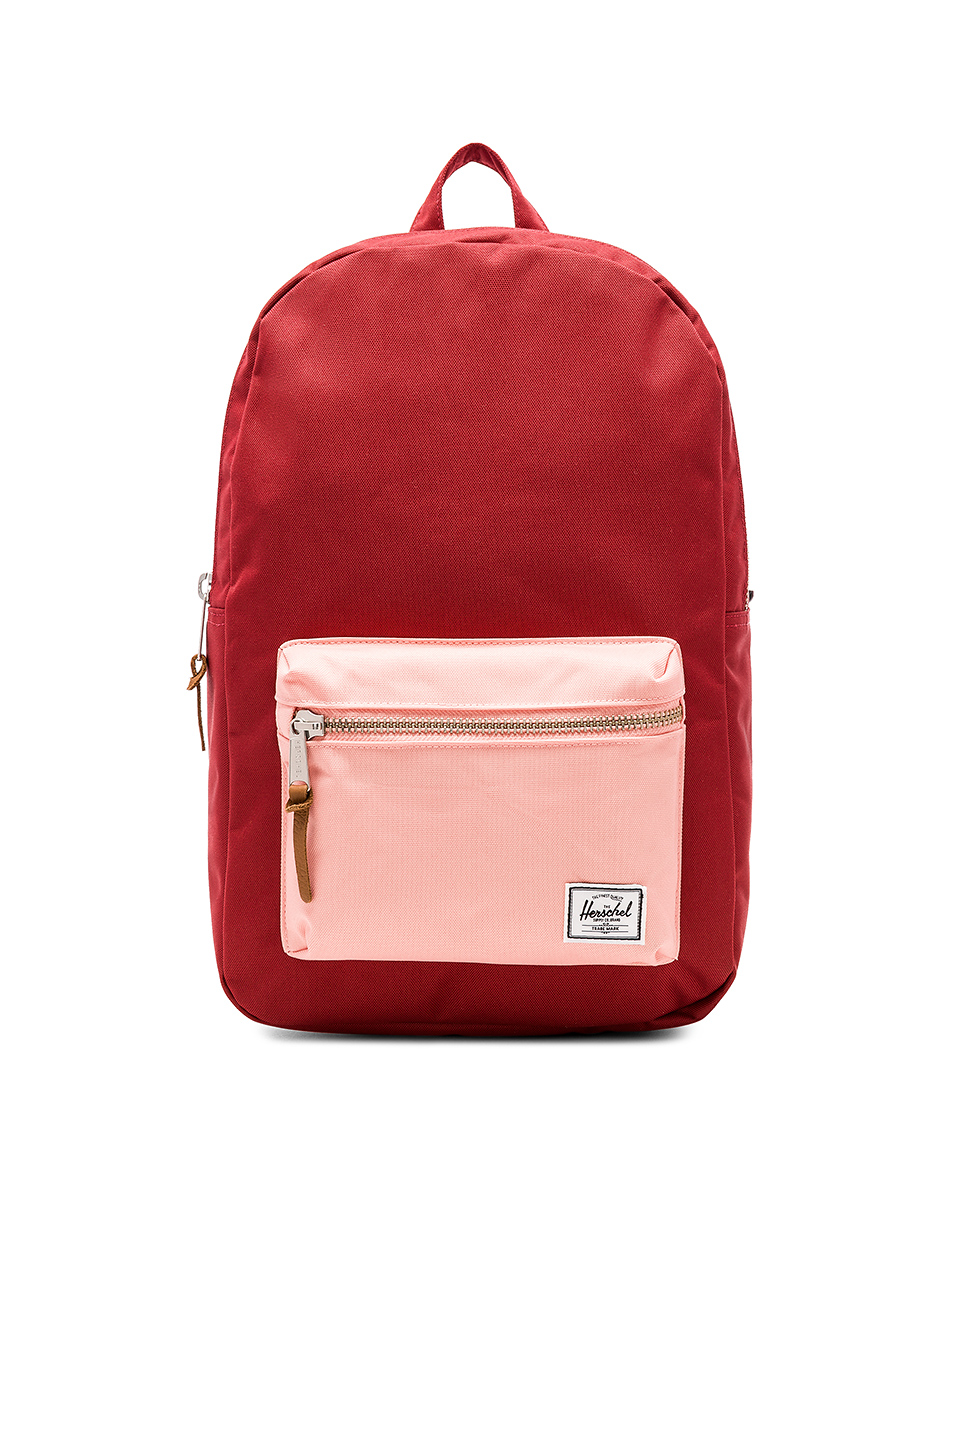 Buy Original Herschel Supply Co. Settlement Backpack at Indonesia ... 1e3ed2a0445c7